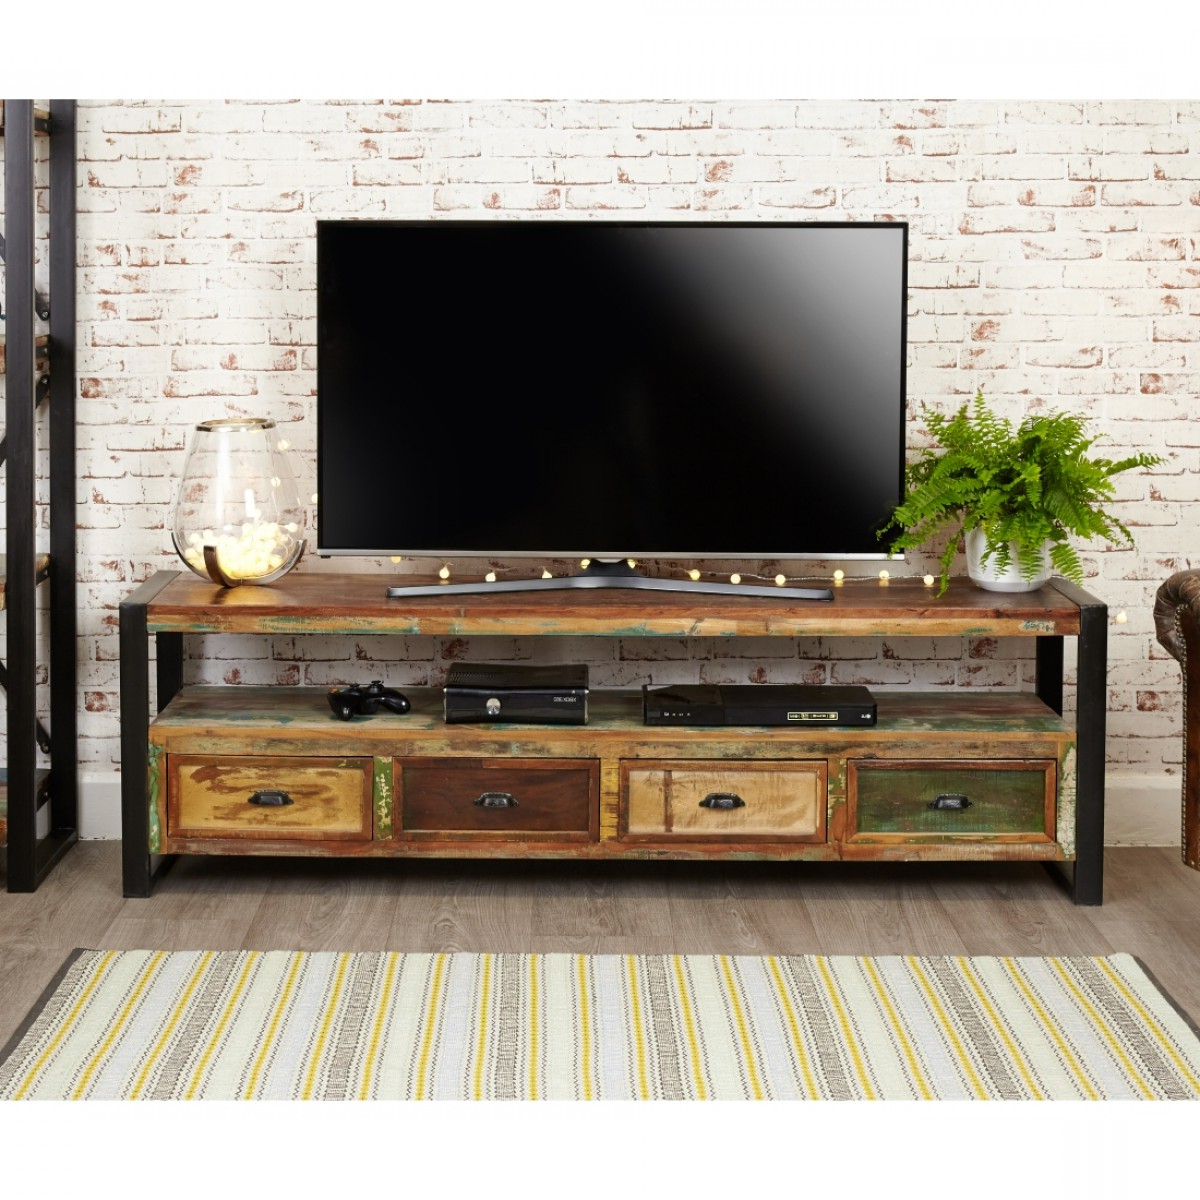 Widescreen Tv Cabinets Regarding 2018 Baumhaus Urban Chic Open Widescreen Tv Cabinet Irf09C (View 18 of 20)